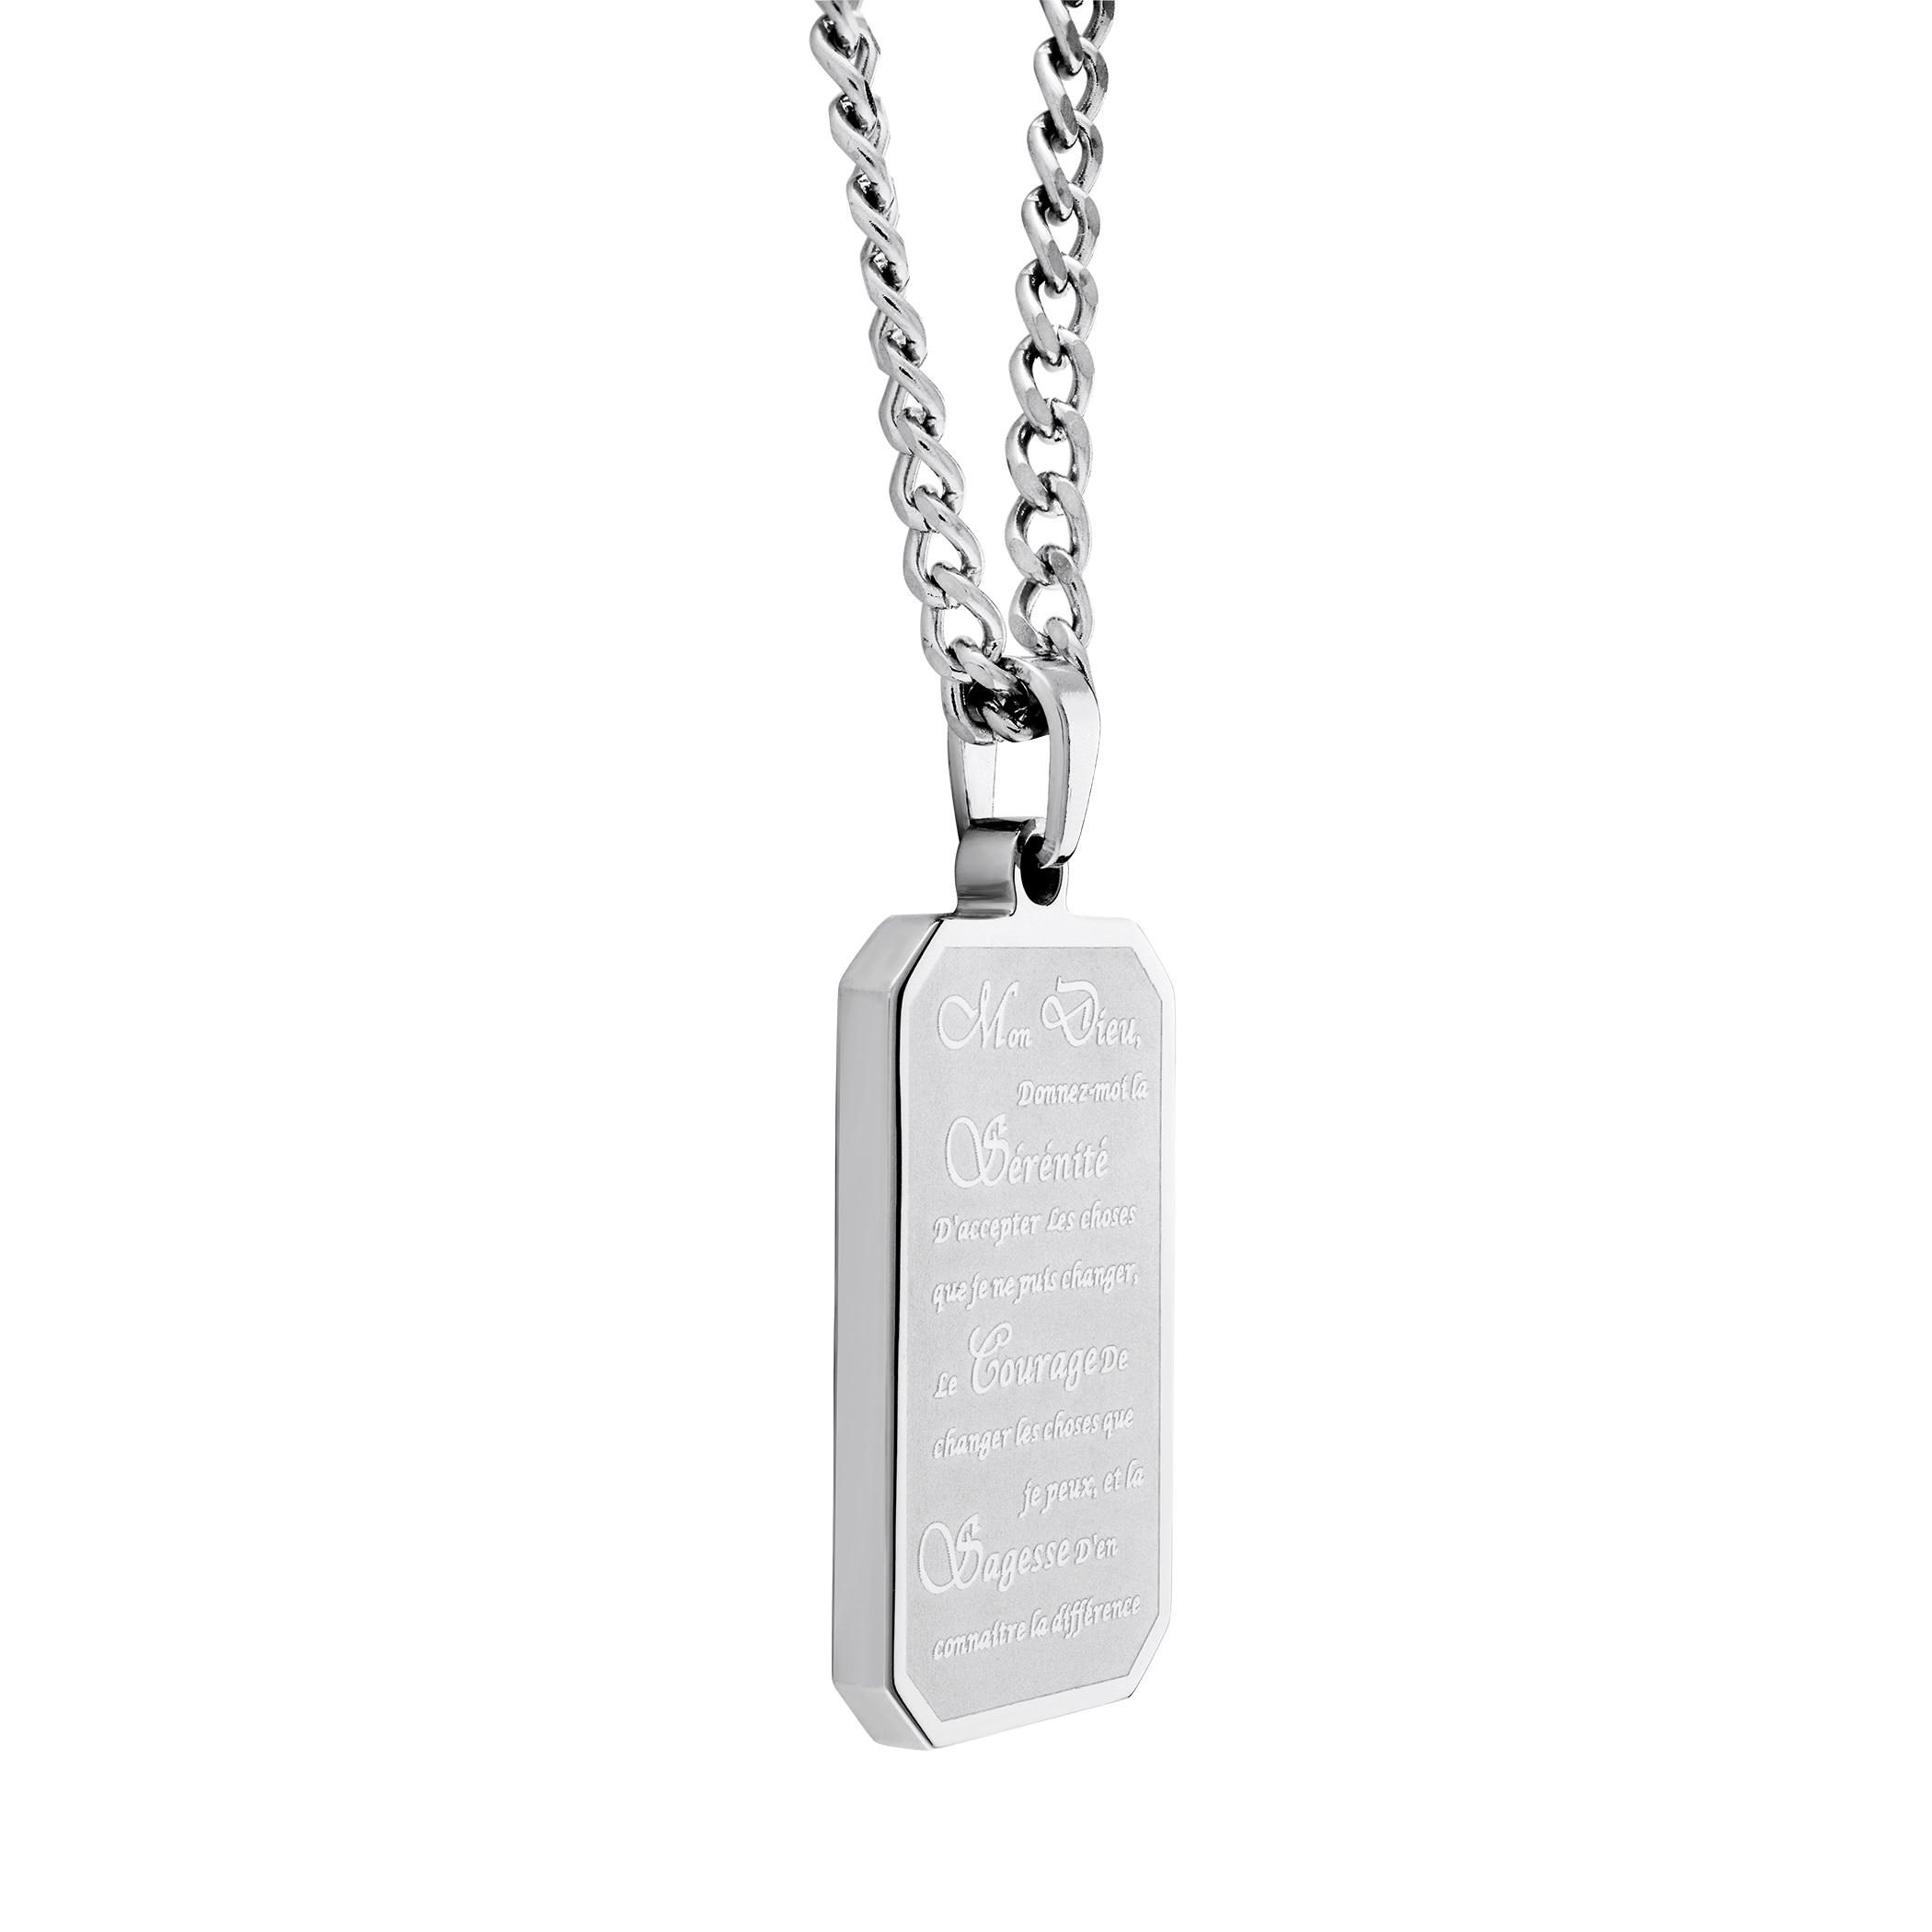 French Serenity prayer plate pendant - Stainless steel